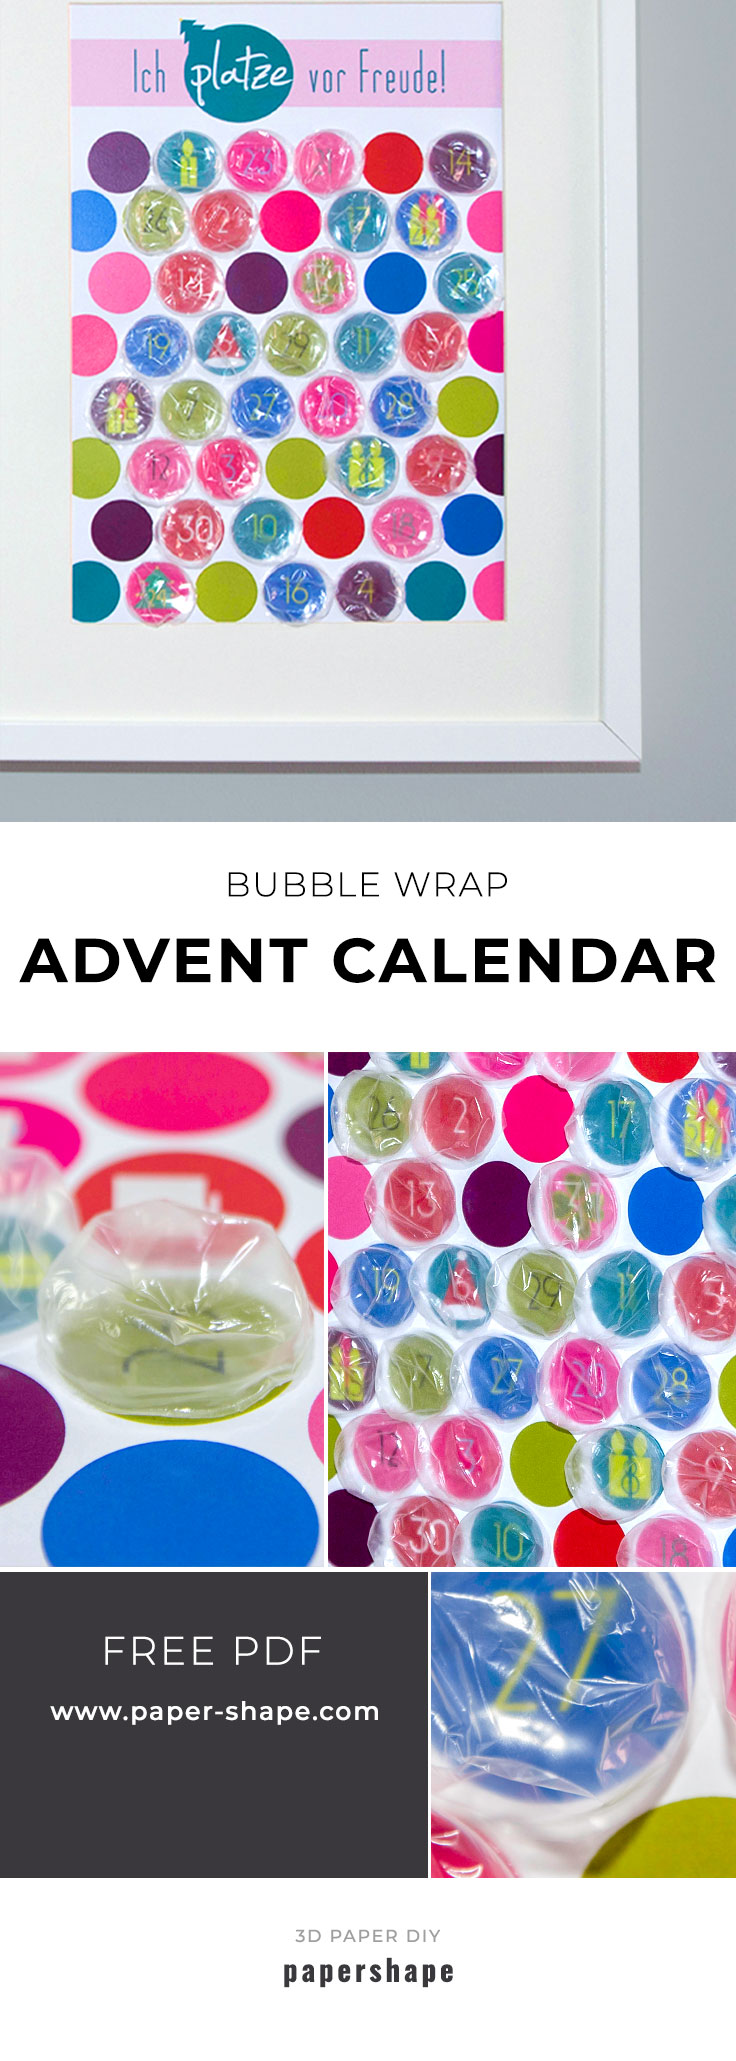 diy Christmas Advent calender from bubble wrap - free printable from #papershape